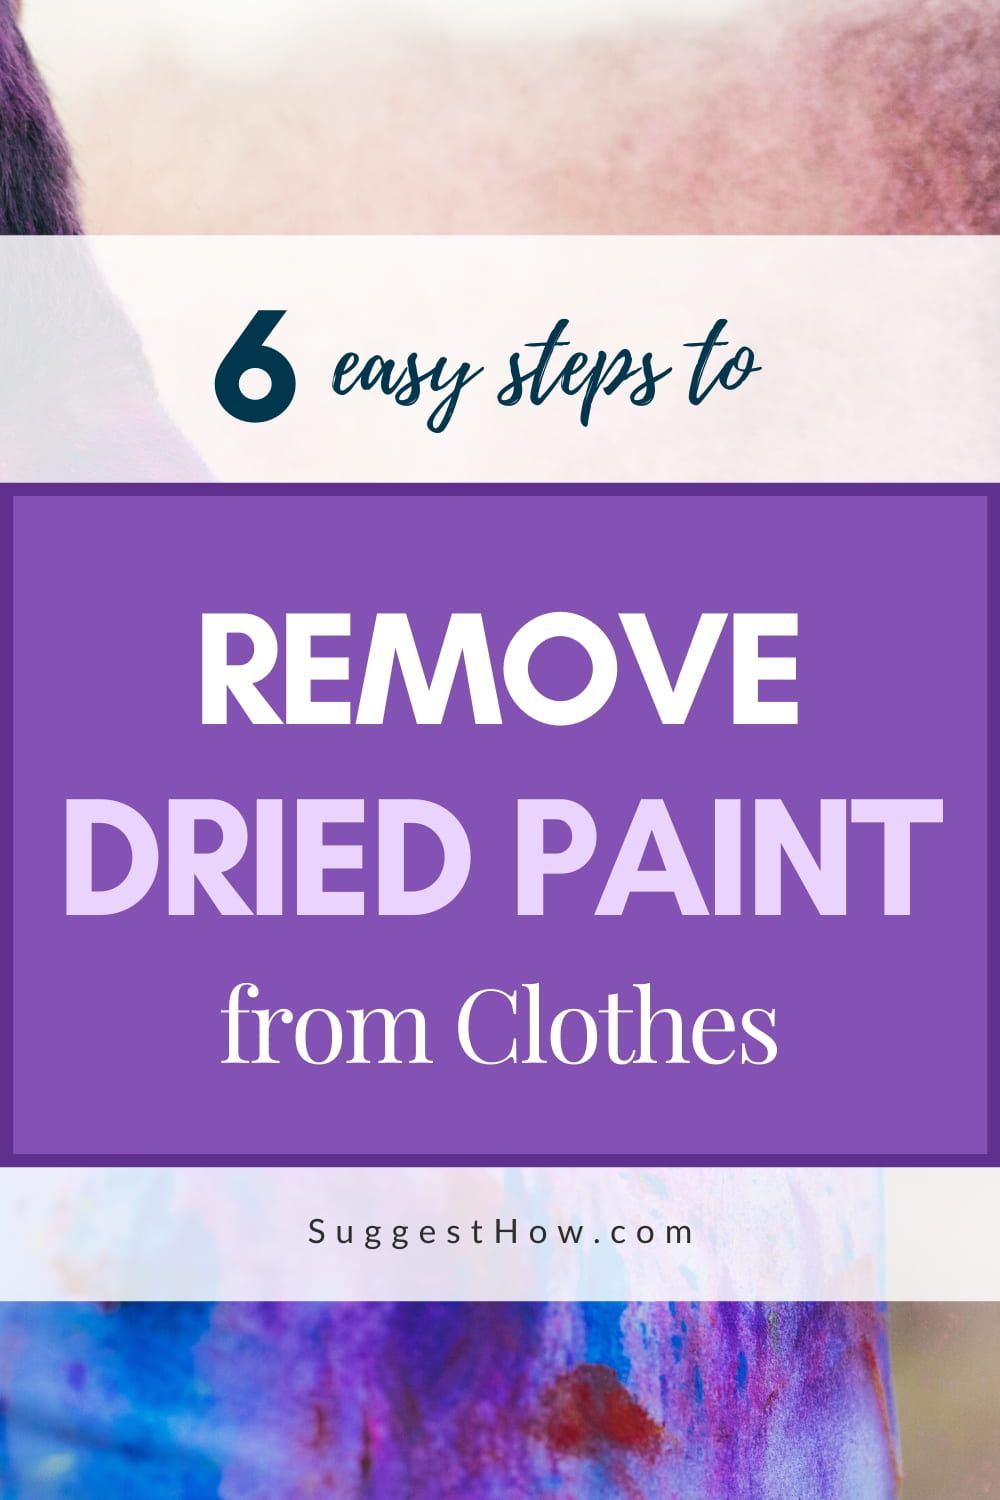 How to remove dried paint from clothes 3 step by step